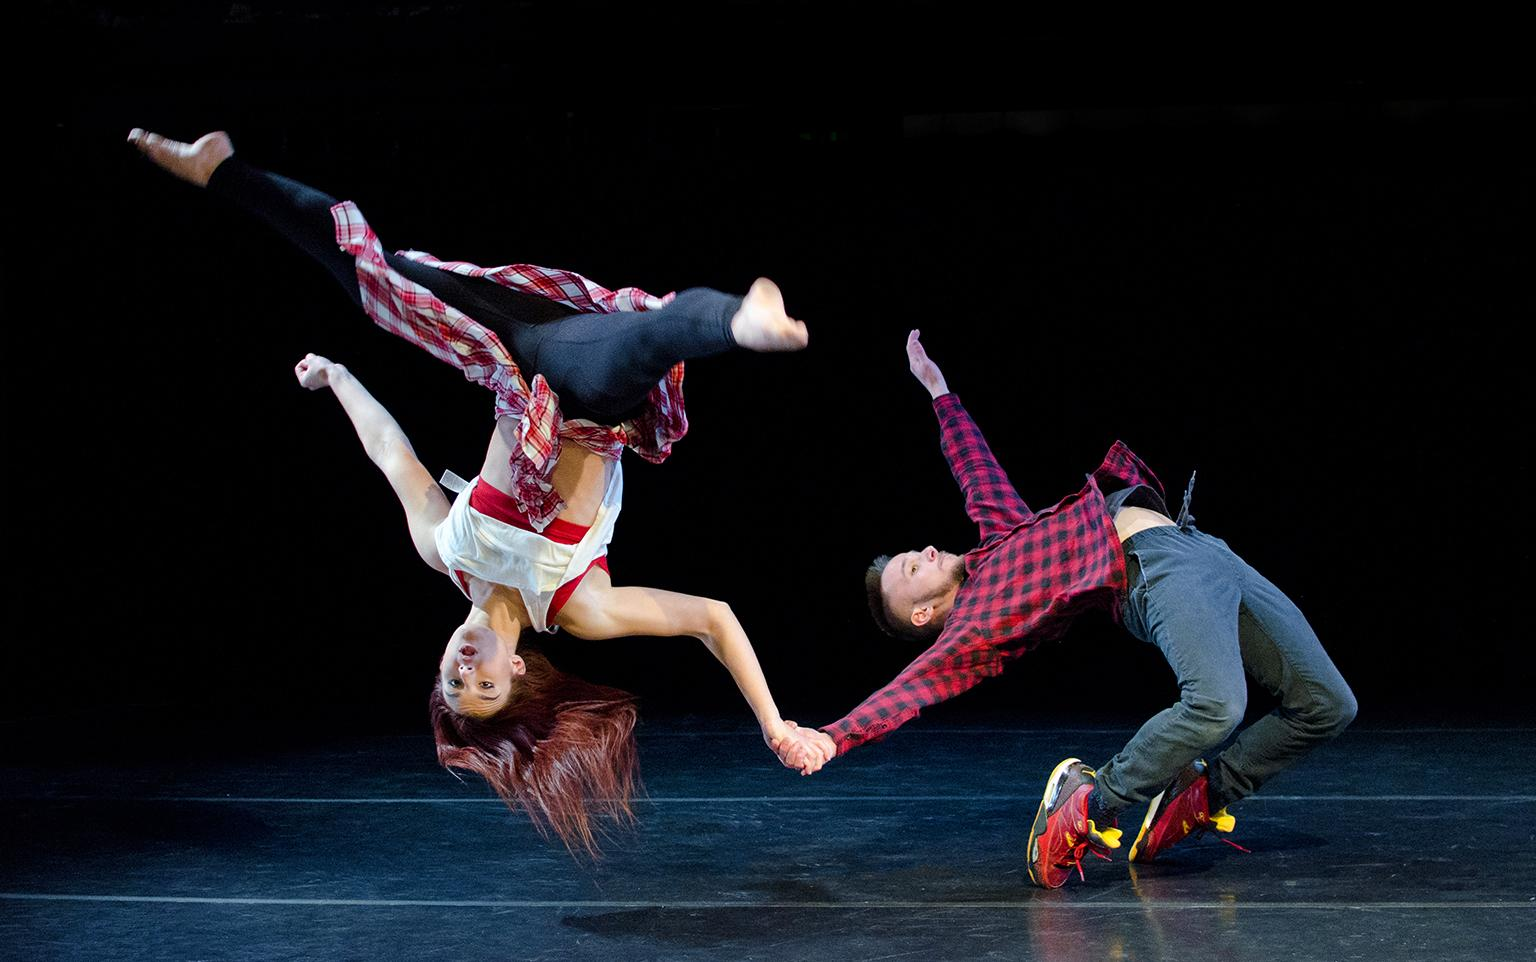 Chicago Dance Crash (Credit: Ashley Deran)